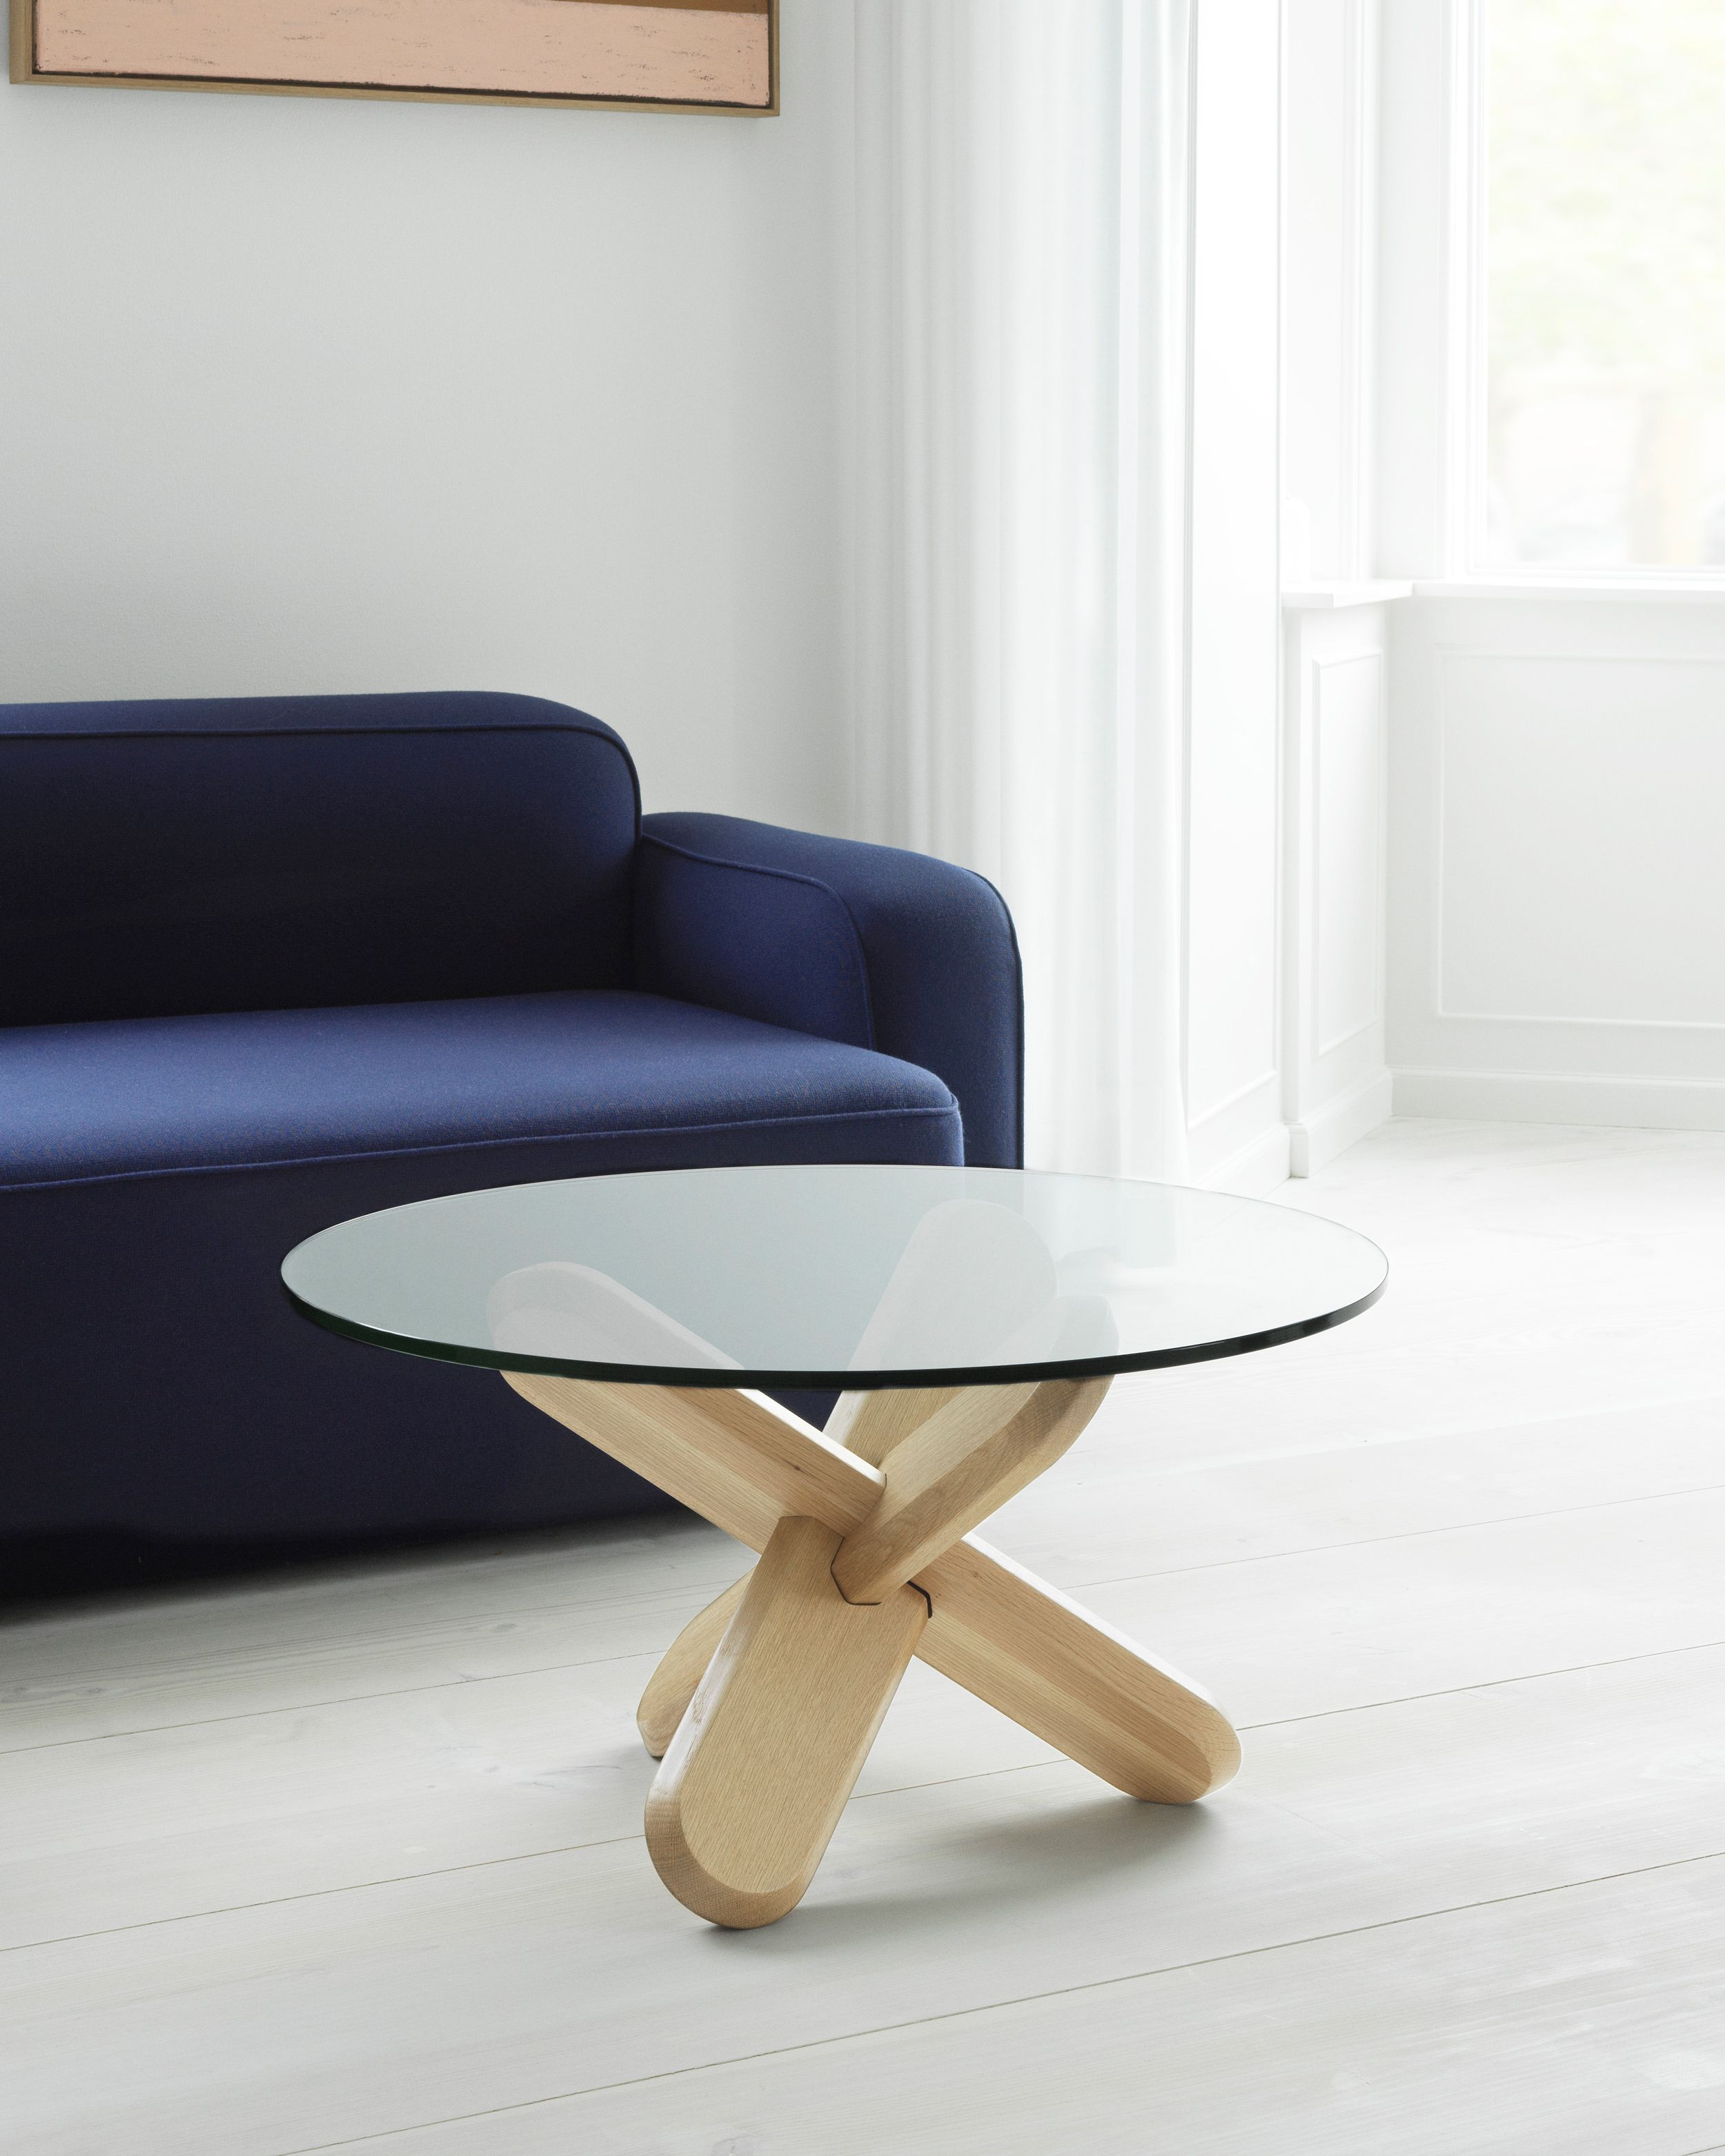 Ding Table A Scuptural Coffee Table In Transparent Glass And Oak Coffee Table Copenhagen Furniture Table [ 3125 x 2500 Pixel ]